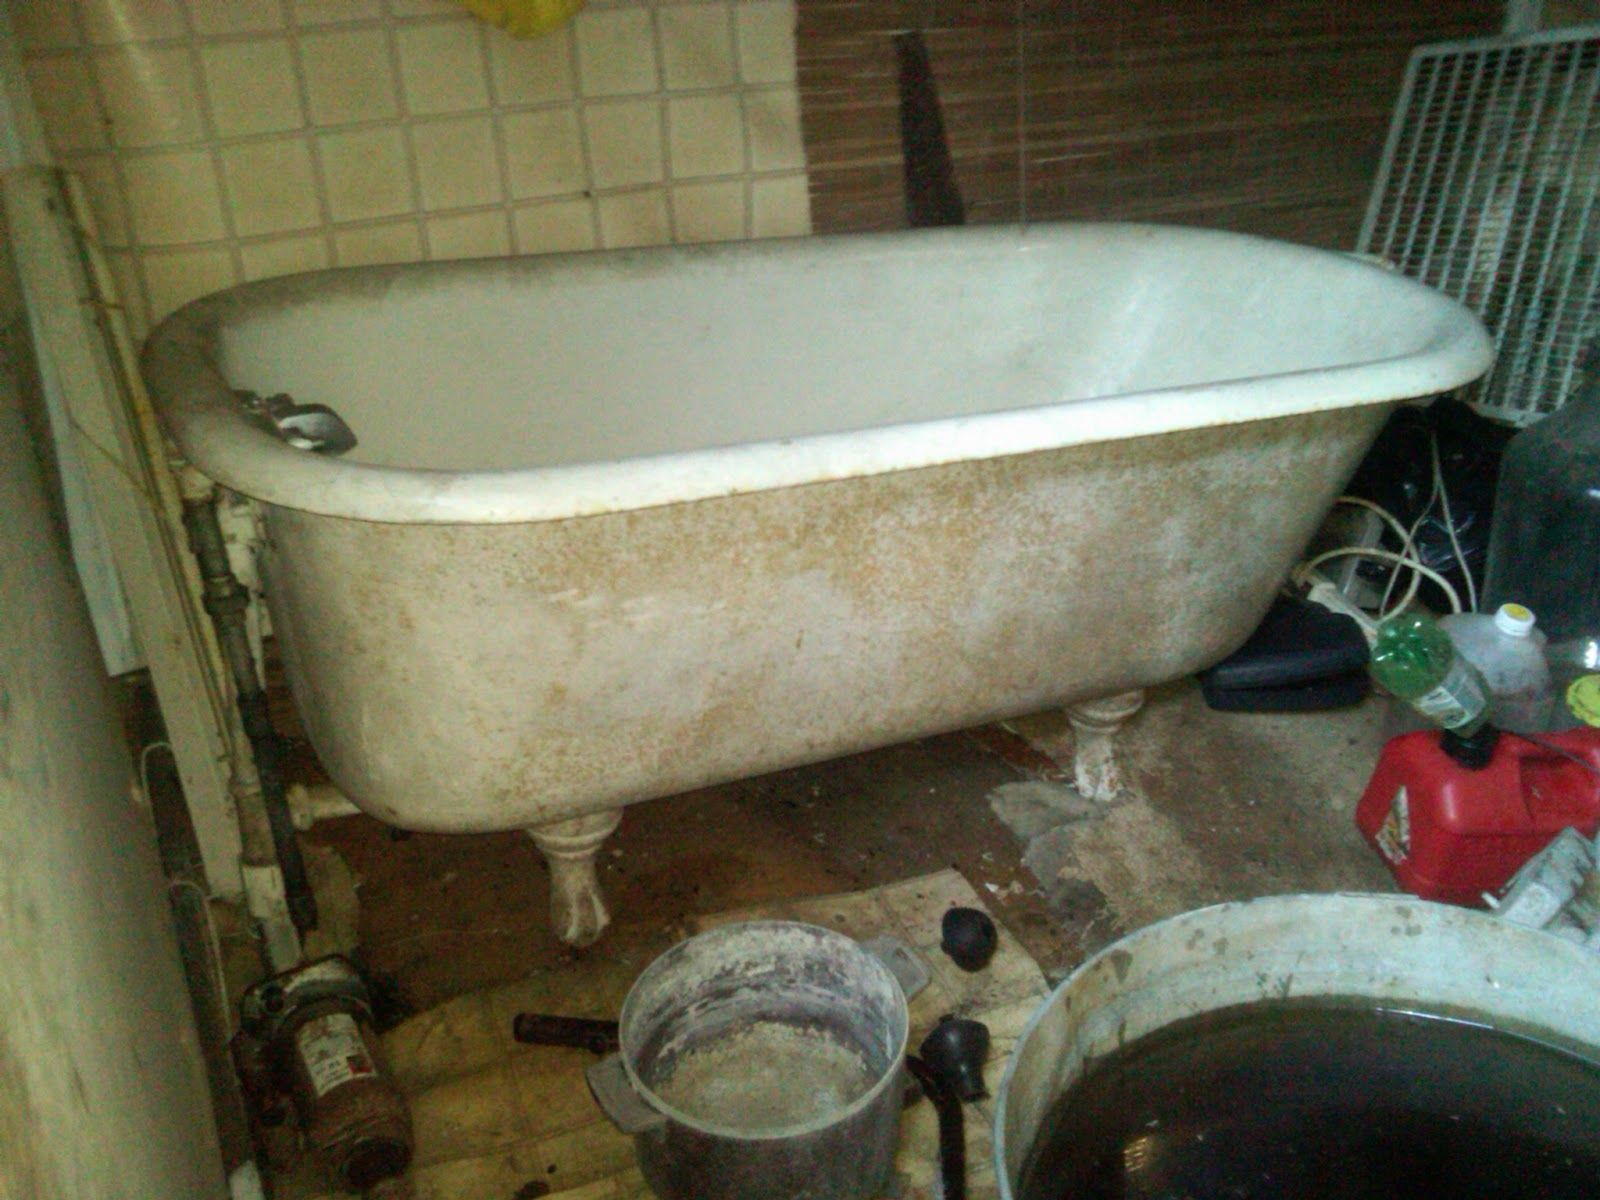 Refinishing Porcelain Bathtubs U0026 Sinks, Part 2 ~ Mom And Her Drill